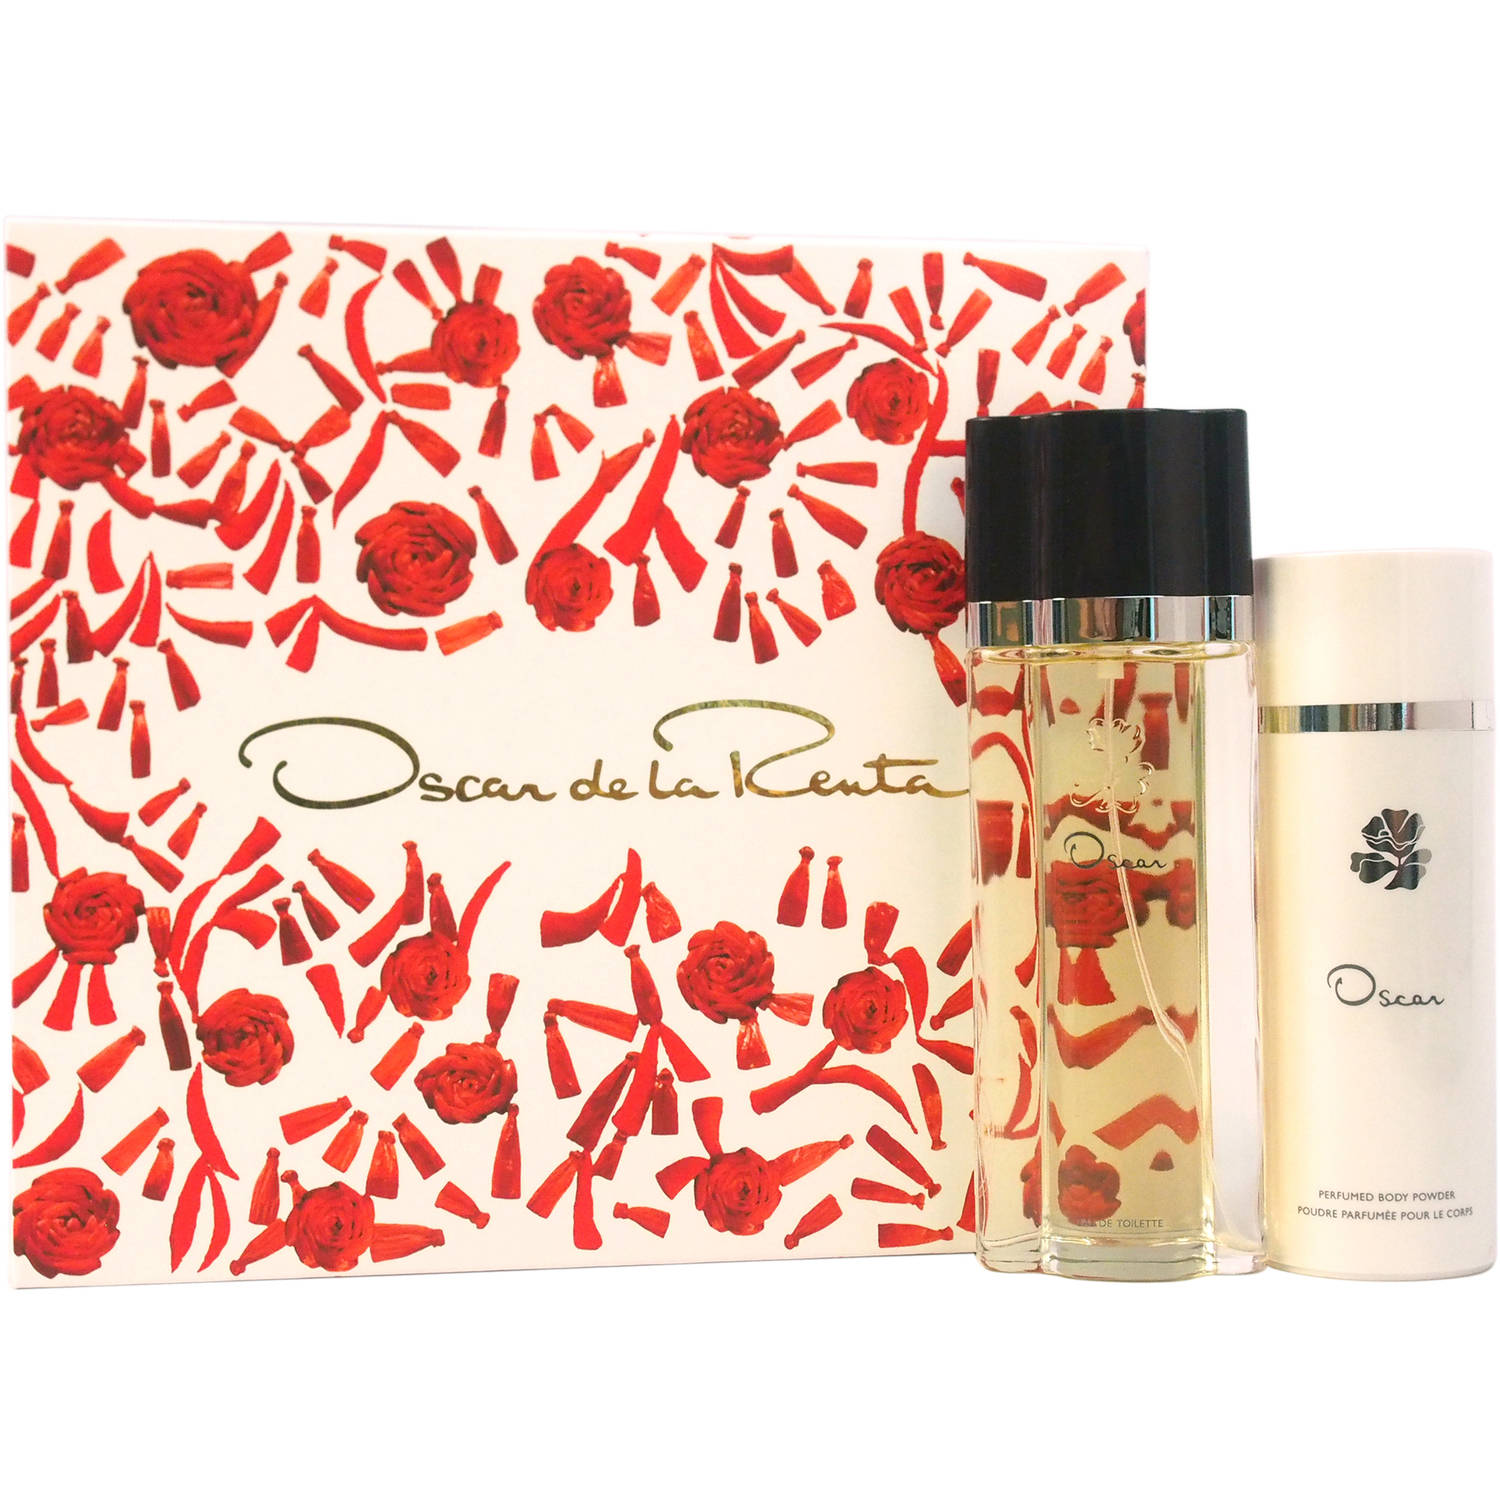 Oscar De La Renta Oscar Gift Set for Men, 2 pc